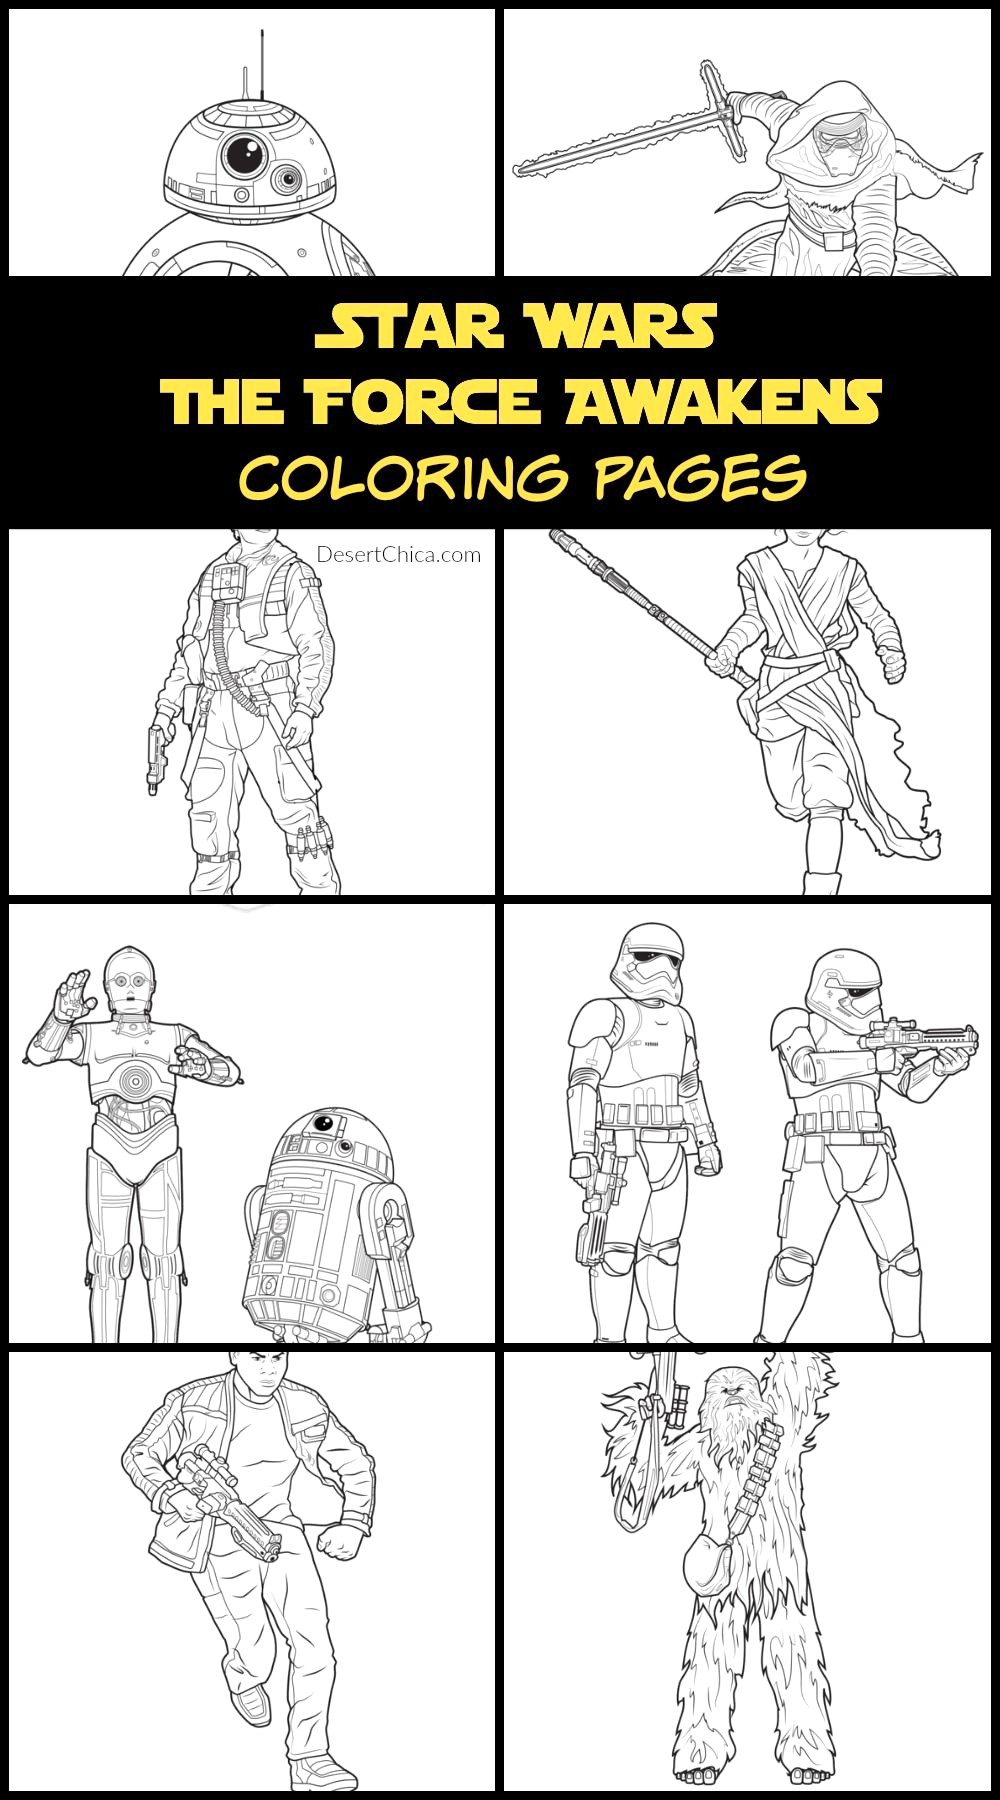 Star Wars the force Awakens Coloring Pages  Printable 1r - To print for your project